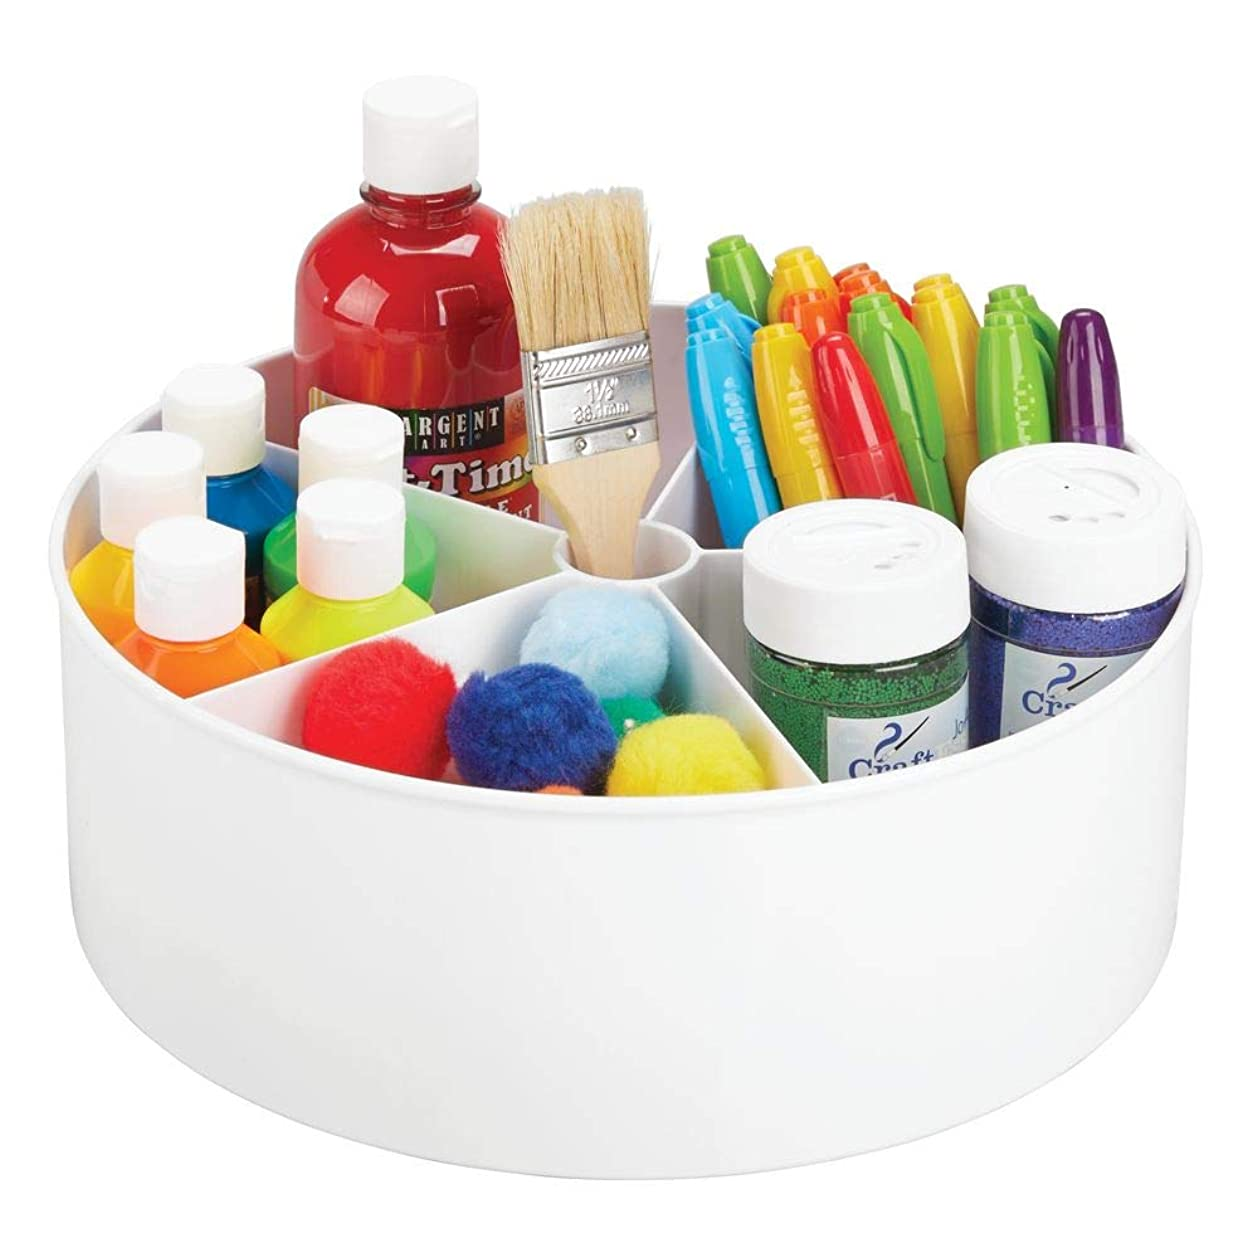 mDesign Deep Plastic Lazy Susan Turntable Storage Organizing Container - Divided Spinning Organizer for Craft, Sewing, Art, School Supplies in Home, Office, Classroom, Playroom or Studio - White pwbsp4907